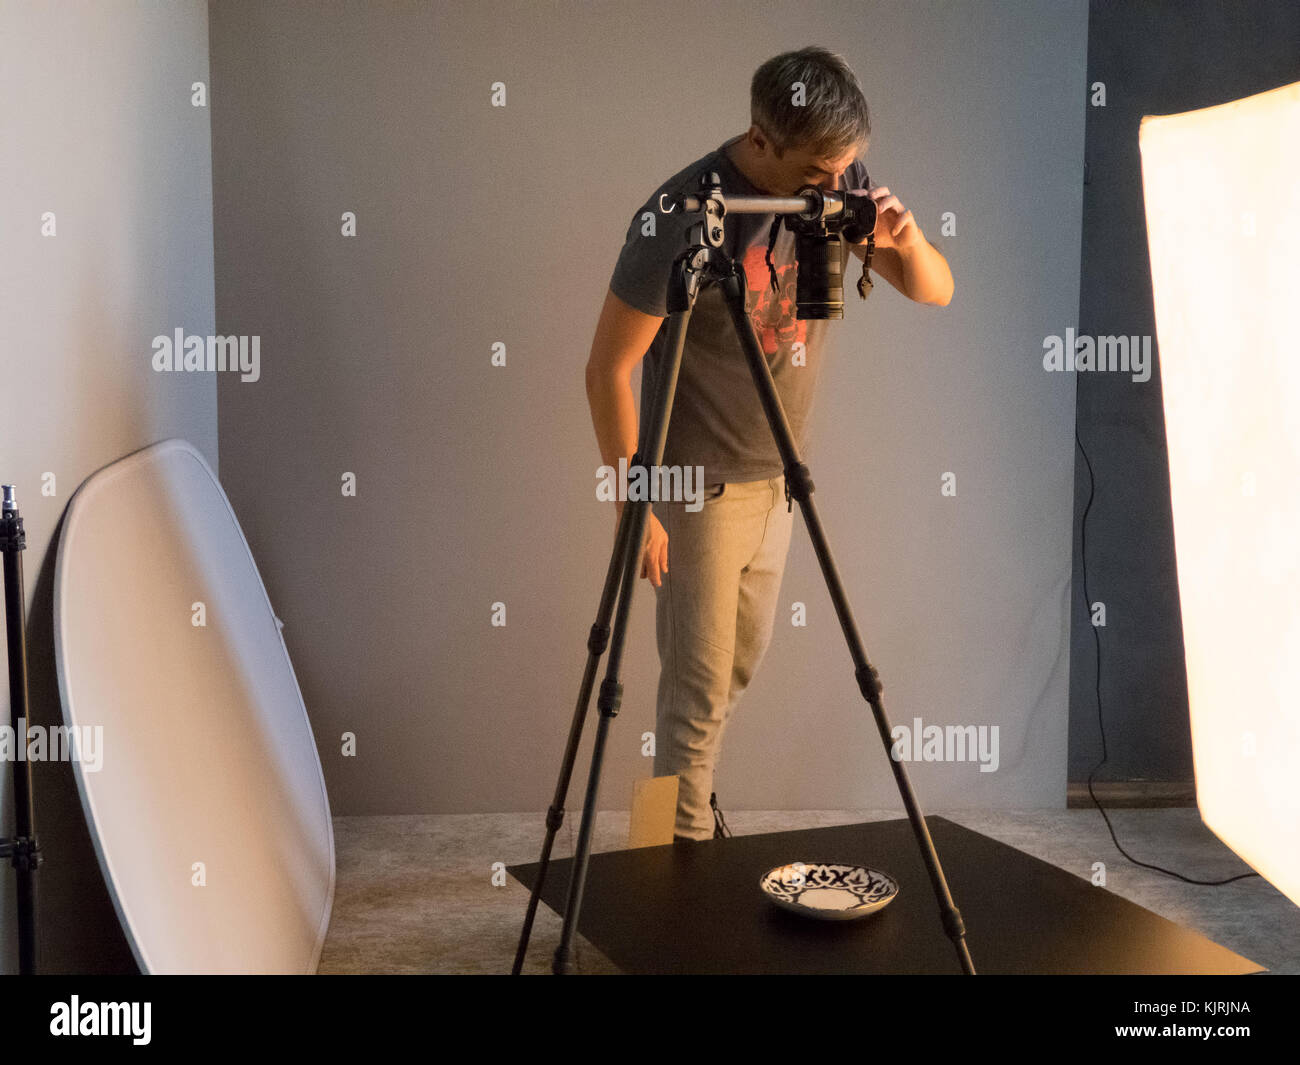 the photographer fills the order in the studio. unintended photography Stock Photo